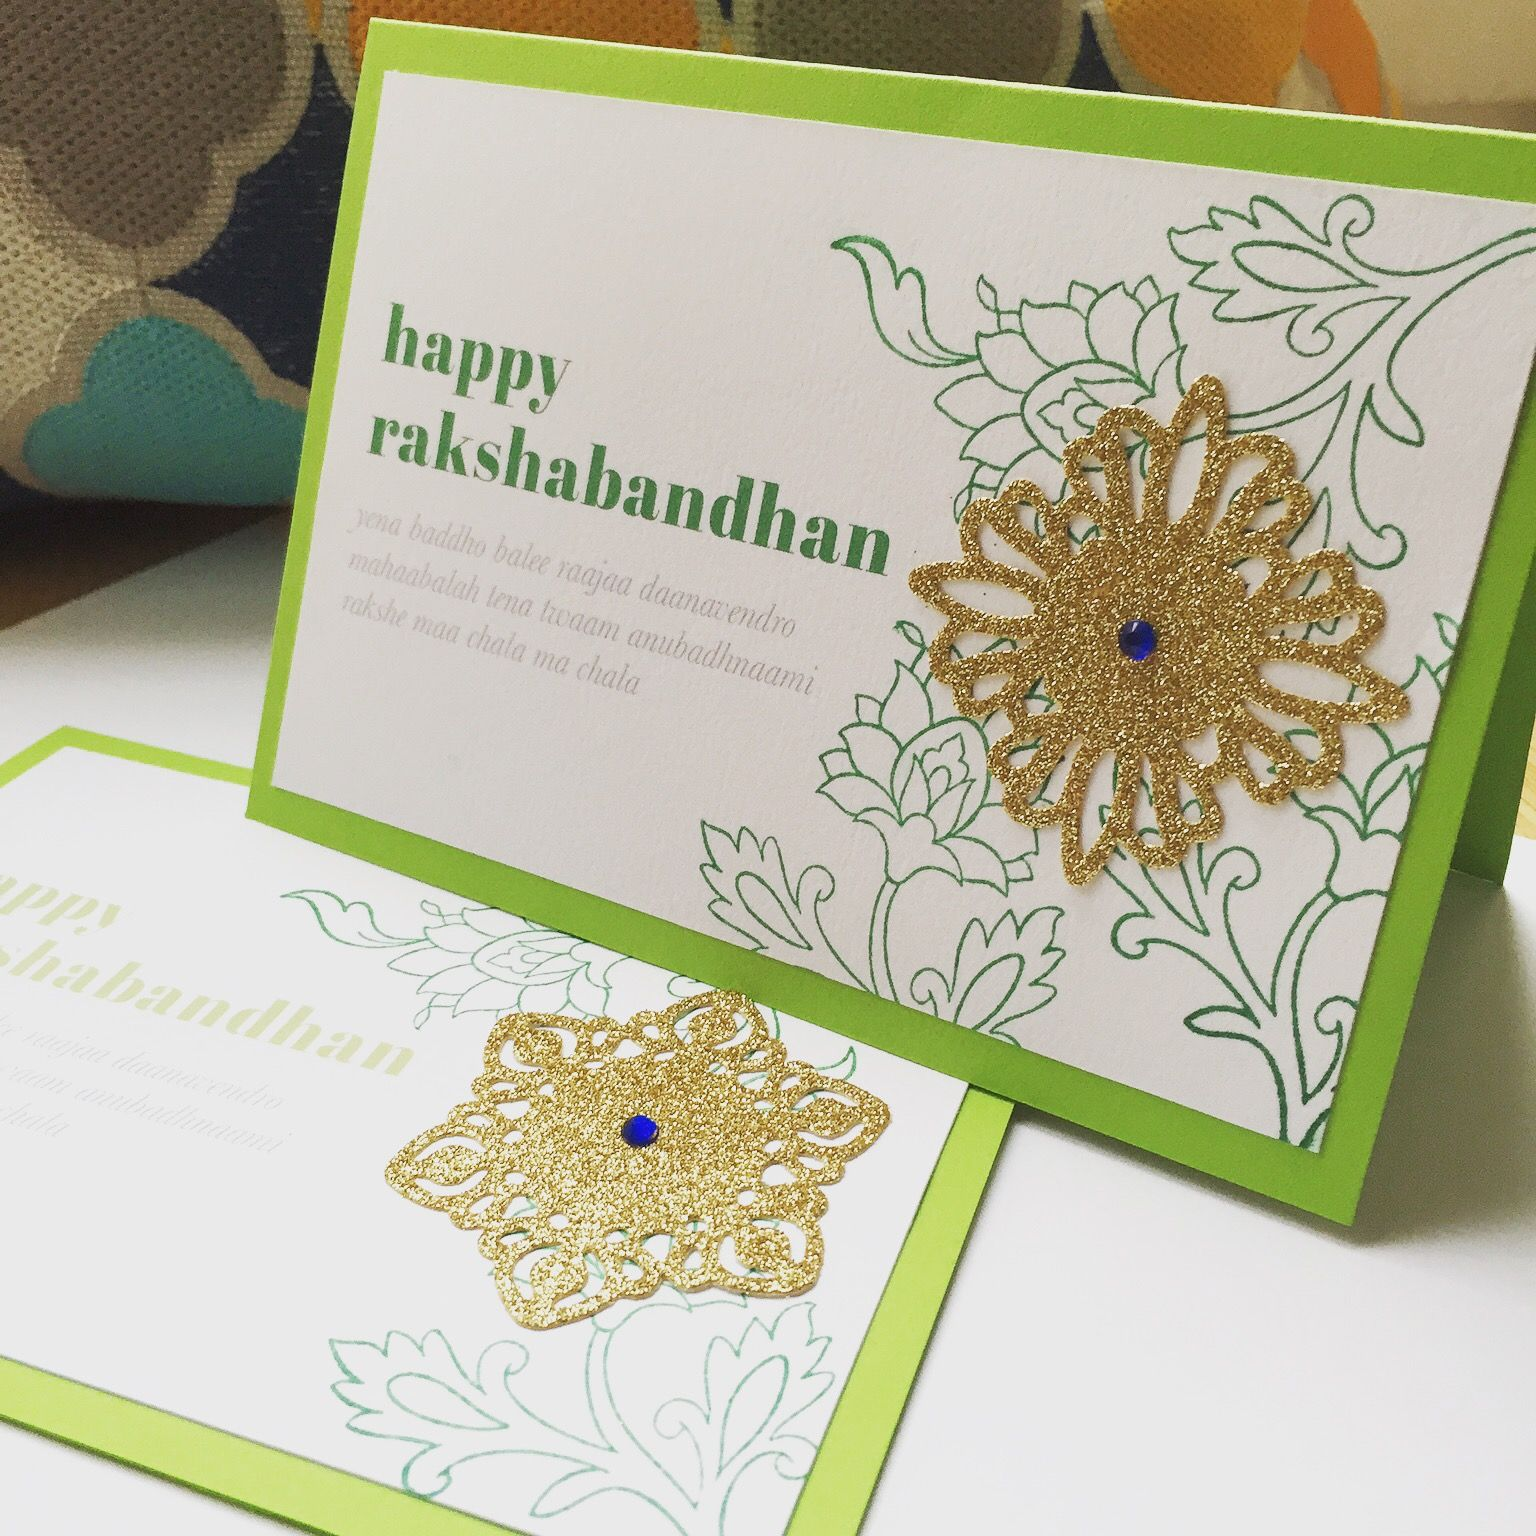 Handmade raksha bandhan greeting cards floral hand stamped cards hand stamped persian florals with gold die cut mandala pattern discovering new and modern techniques with our new raksha bandhan cards kristyandbryce Image collections